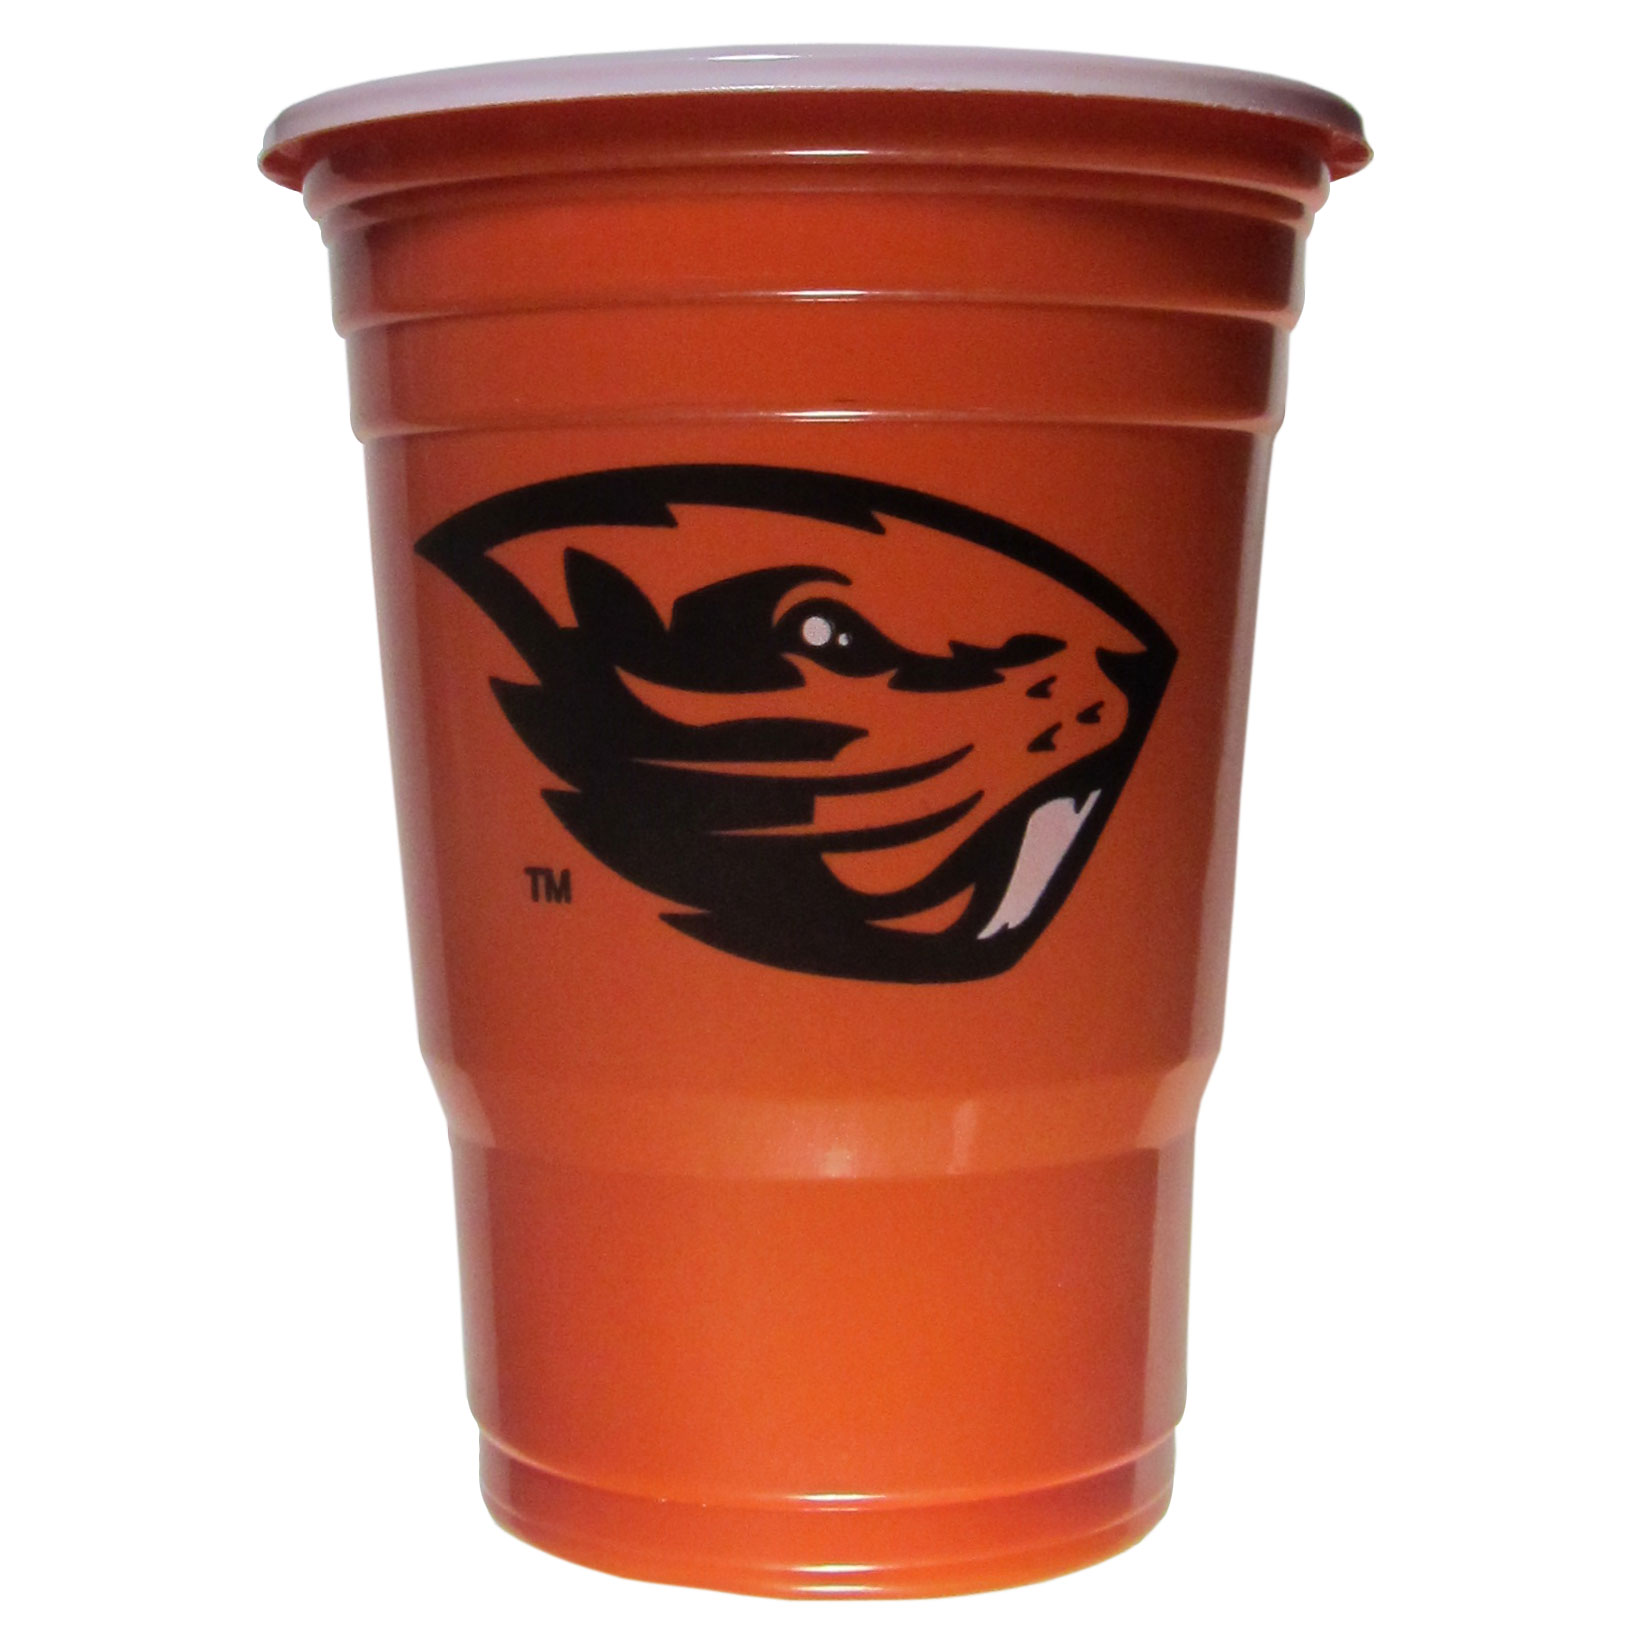 Oregon St. Beavers Plastic Game Day Cups 2 sleeves of 18 (36 Cups) - Our 18 ounce game day cups are what every tailgating or backyard events needs! The cups feature a big Oregon St. Beavers logo so you can show off your team pride. The popular 18 ounce size is perfect for drinks or ping pong balls! 2 sleeves of 18 cups, 36 cups in total.